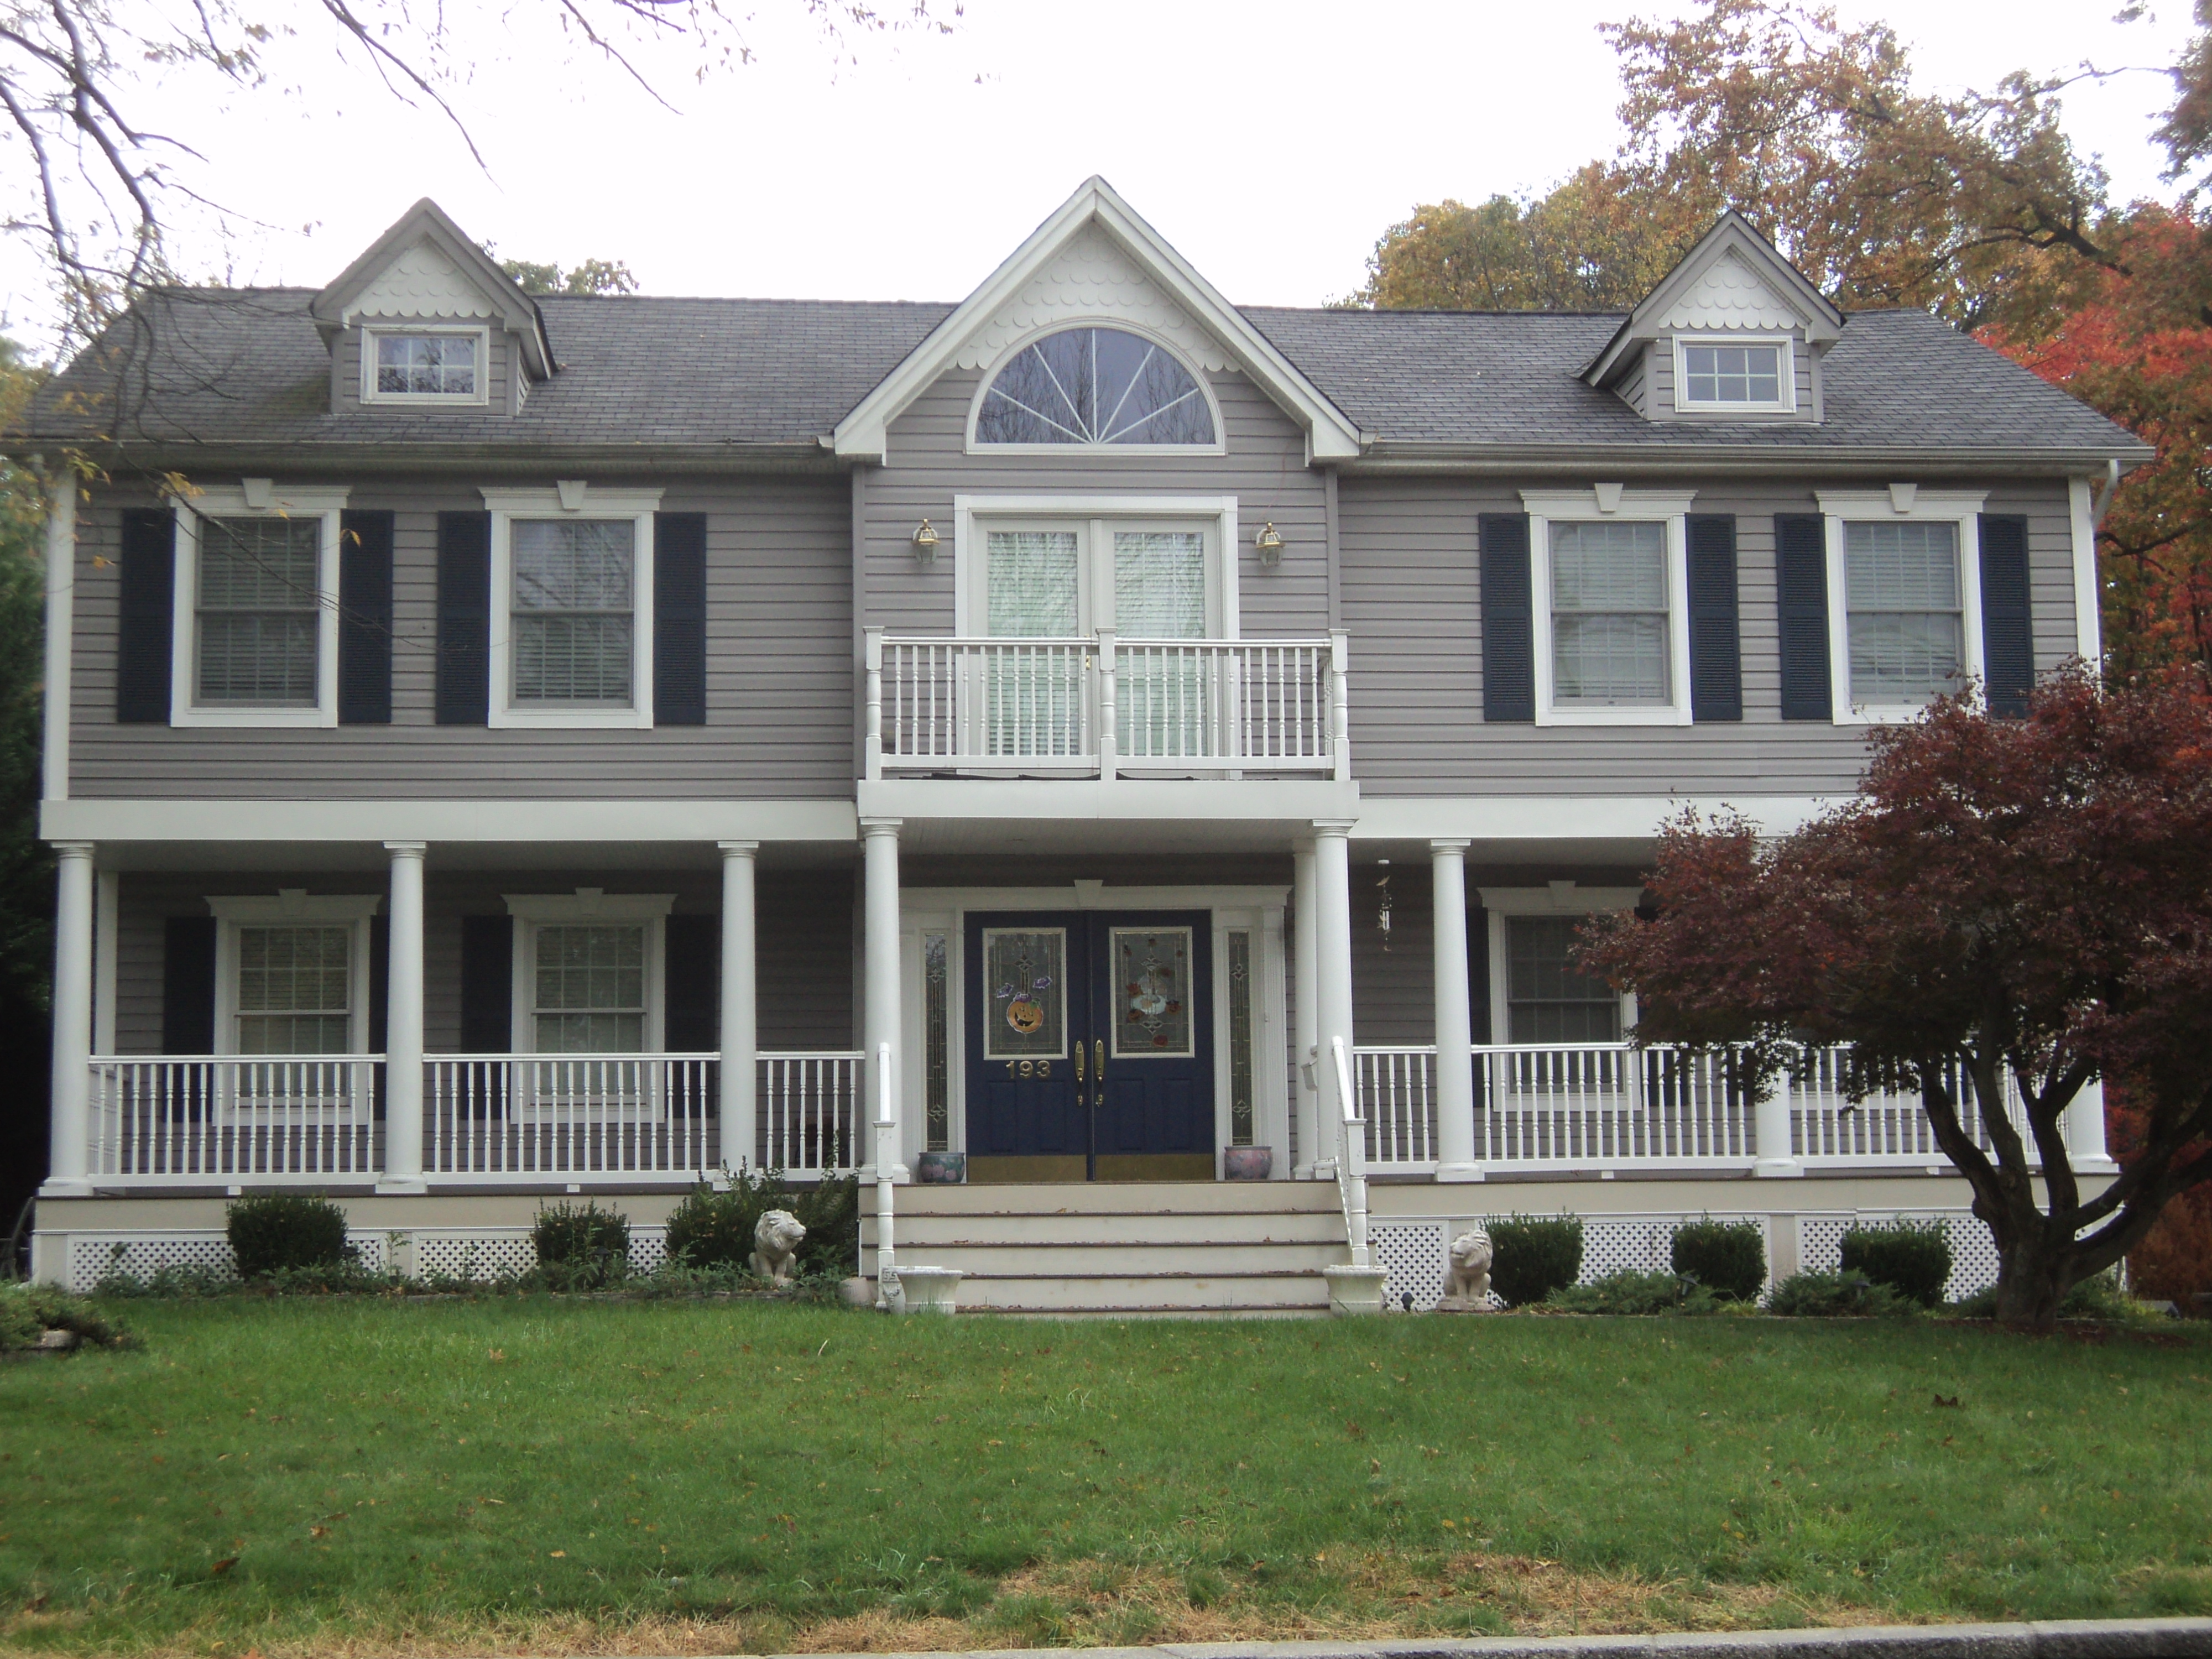 House Siding Types In Essex County Nj West Orange Roof